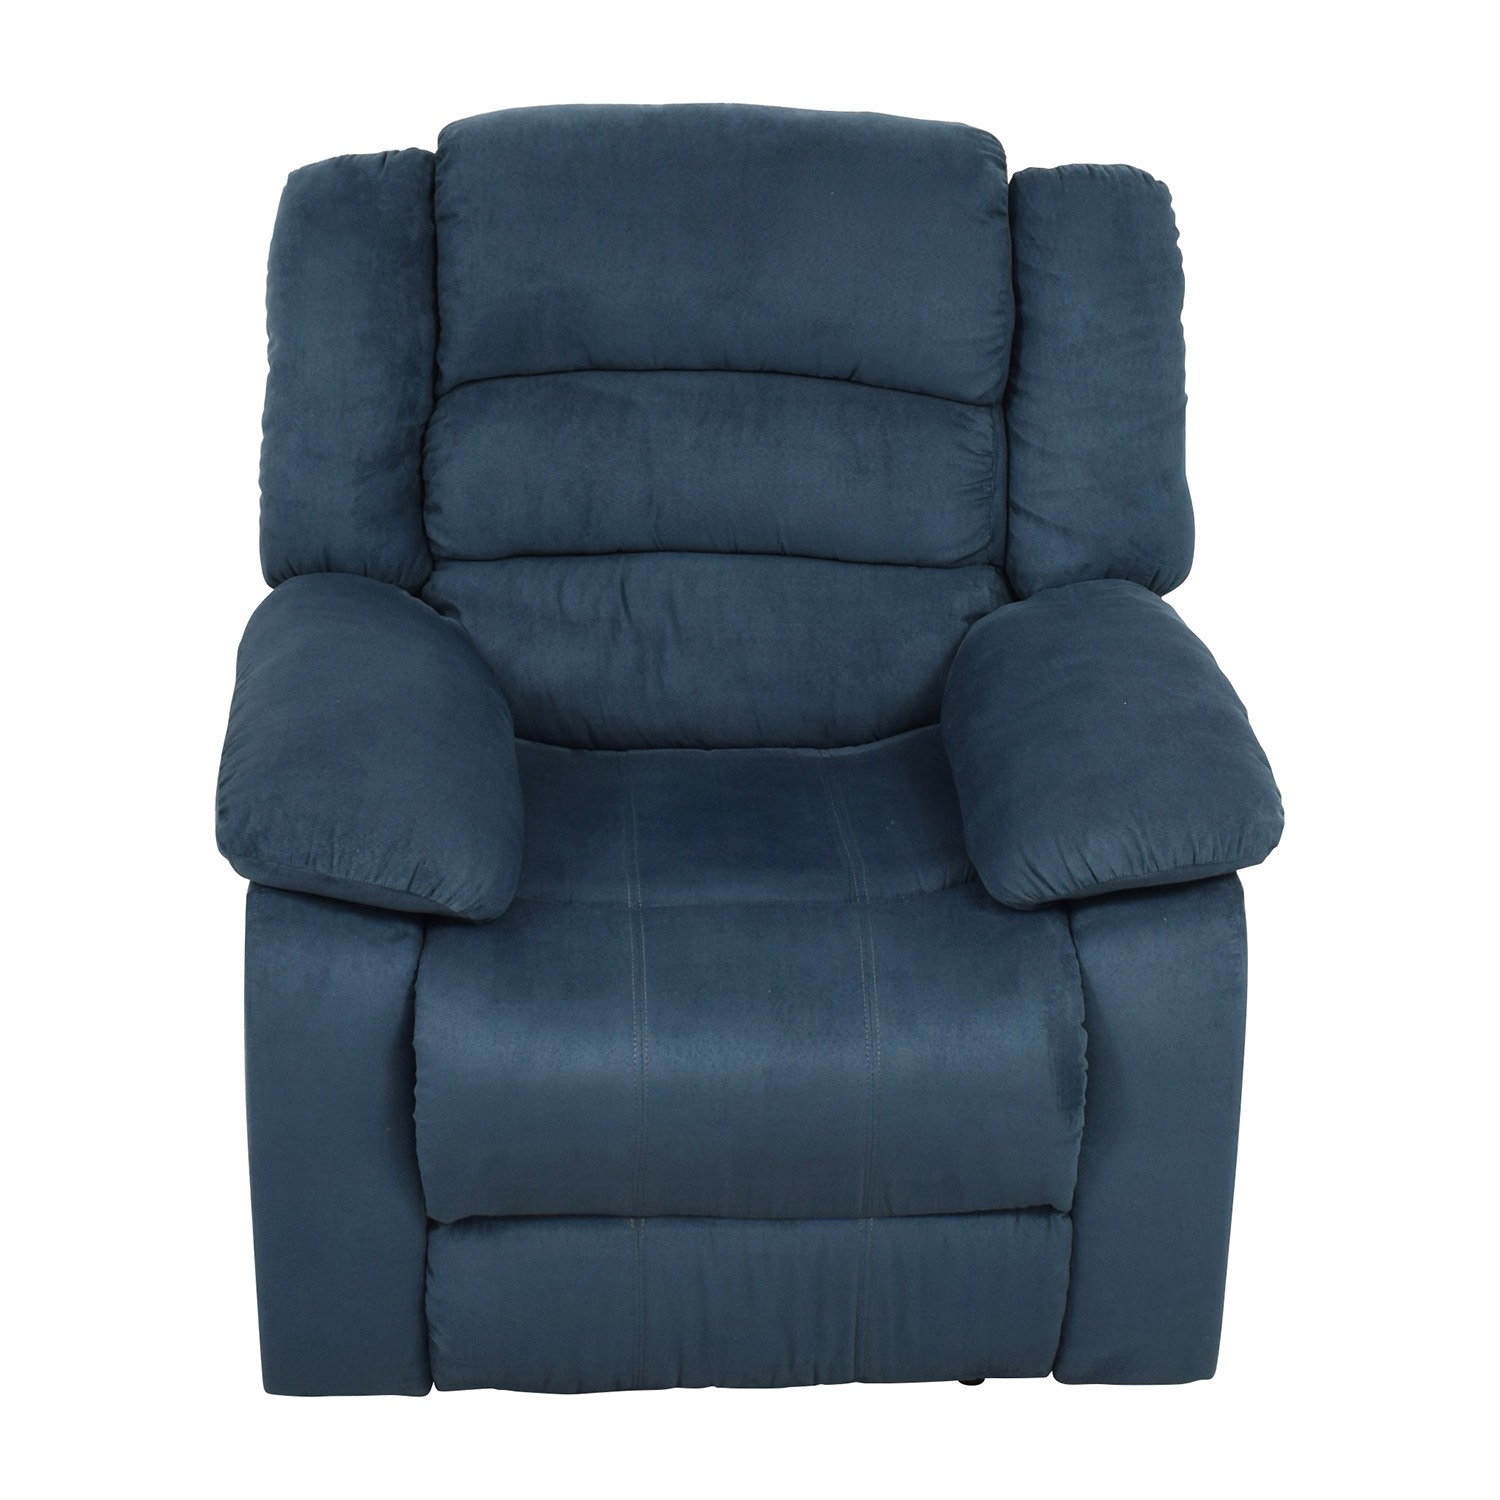 Nathaniel Home Nathaniel Home Express Addison Contemporary Recliner